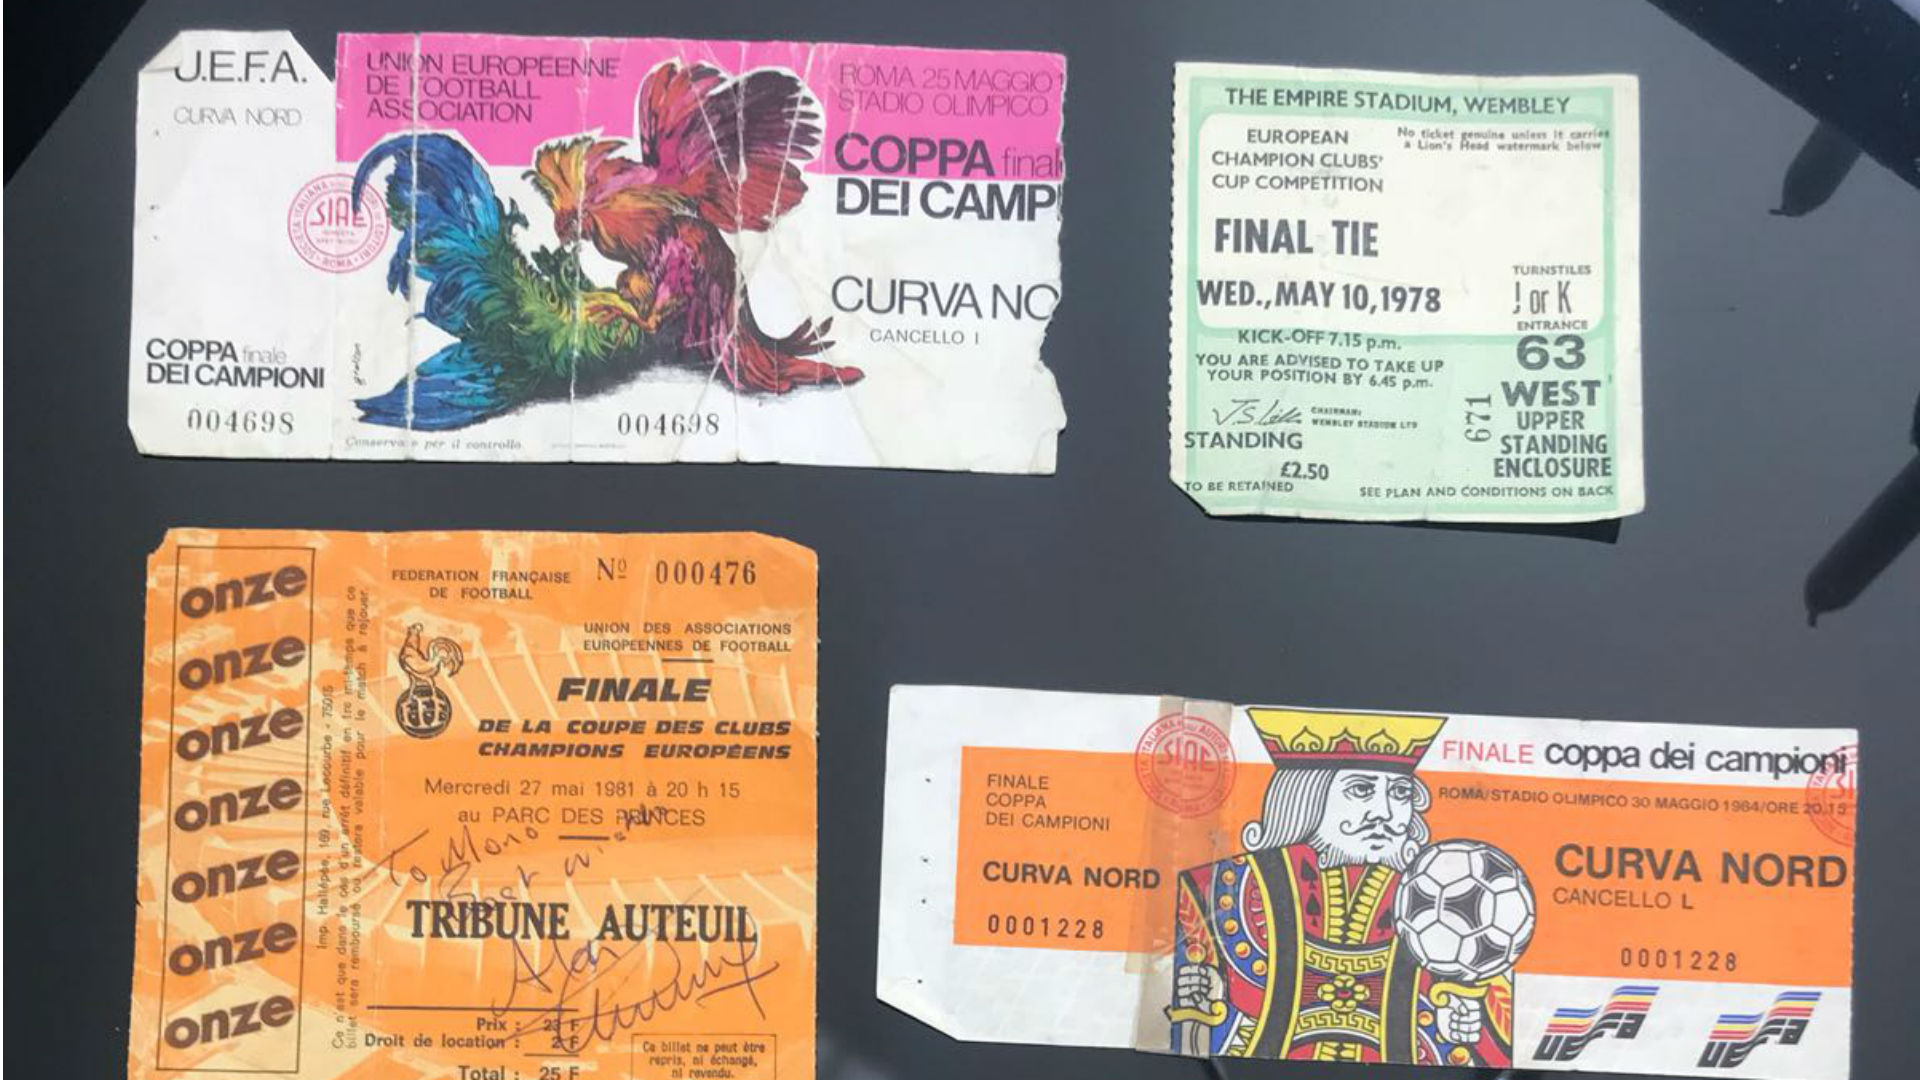 Stephen Monaghan's Liverpool European Cup final ticket stubs